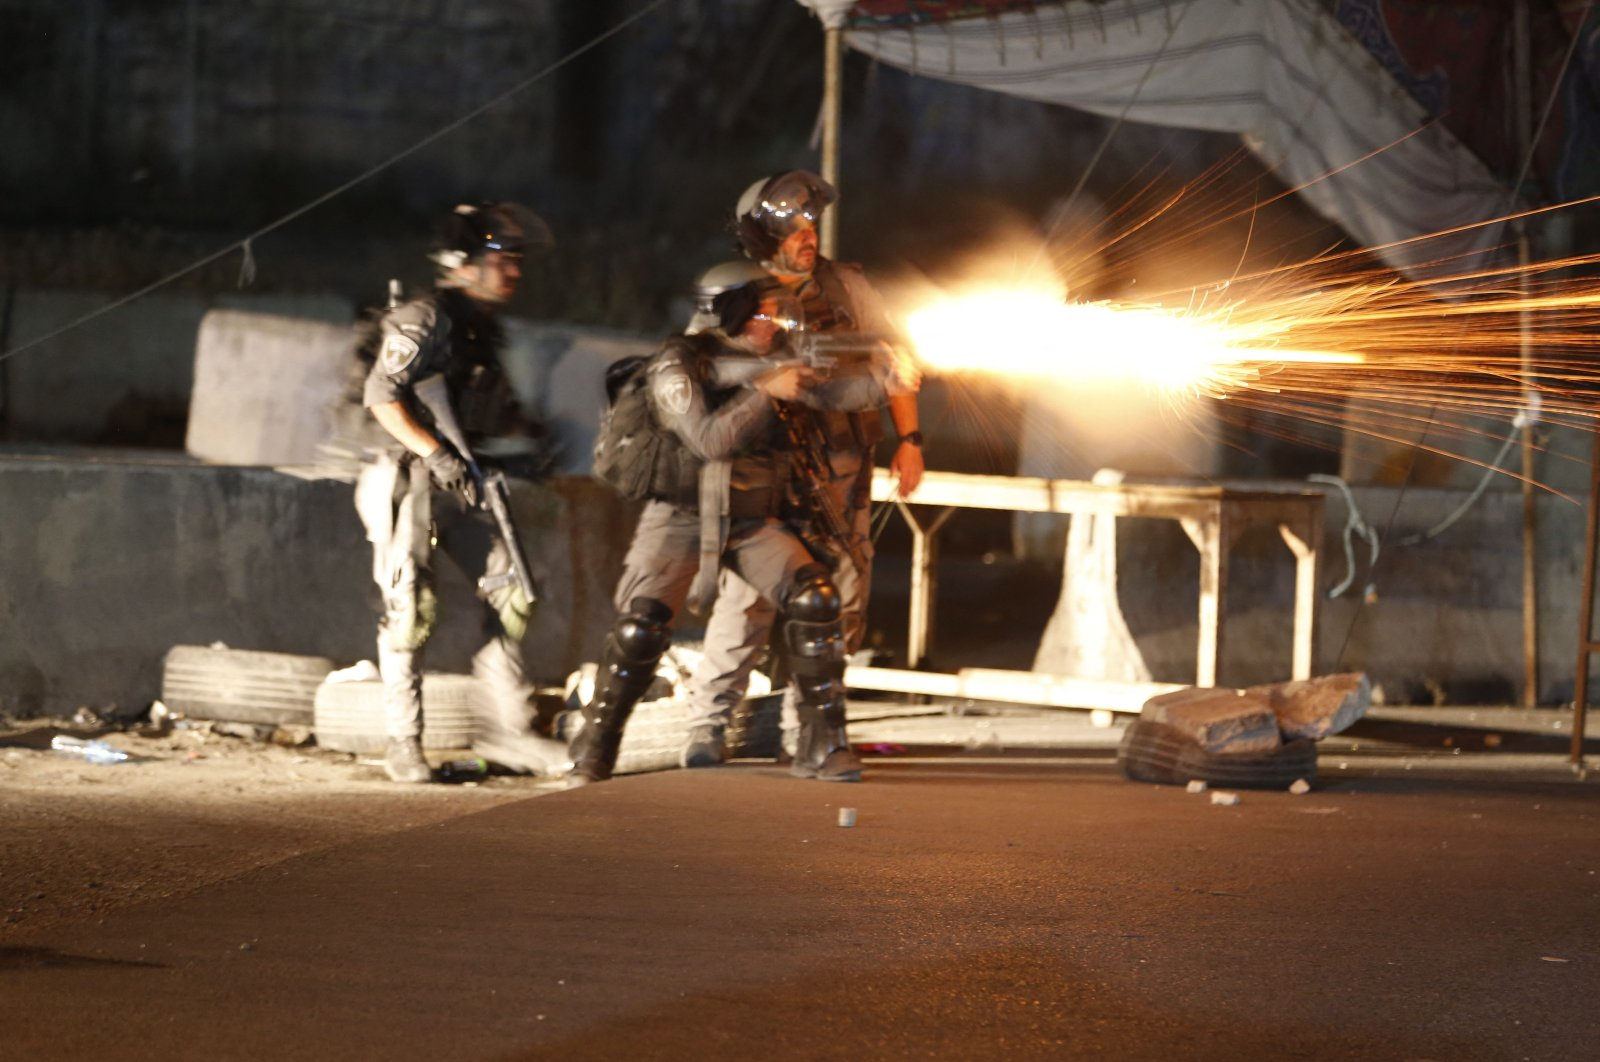 Israeli army soldiers fire tear gas at Palestinians at the Qalandiya checkpoint between Ramallah and Jerusalem, in the occupied West Bank, May 11, 2021. (AFP Photo)